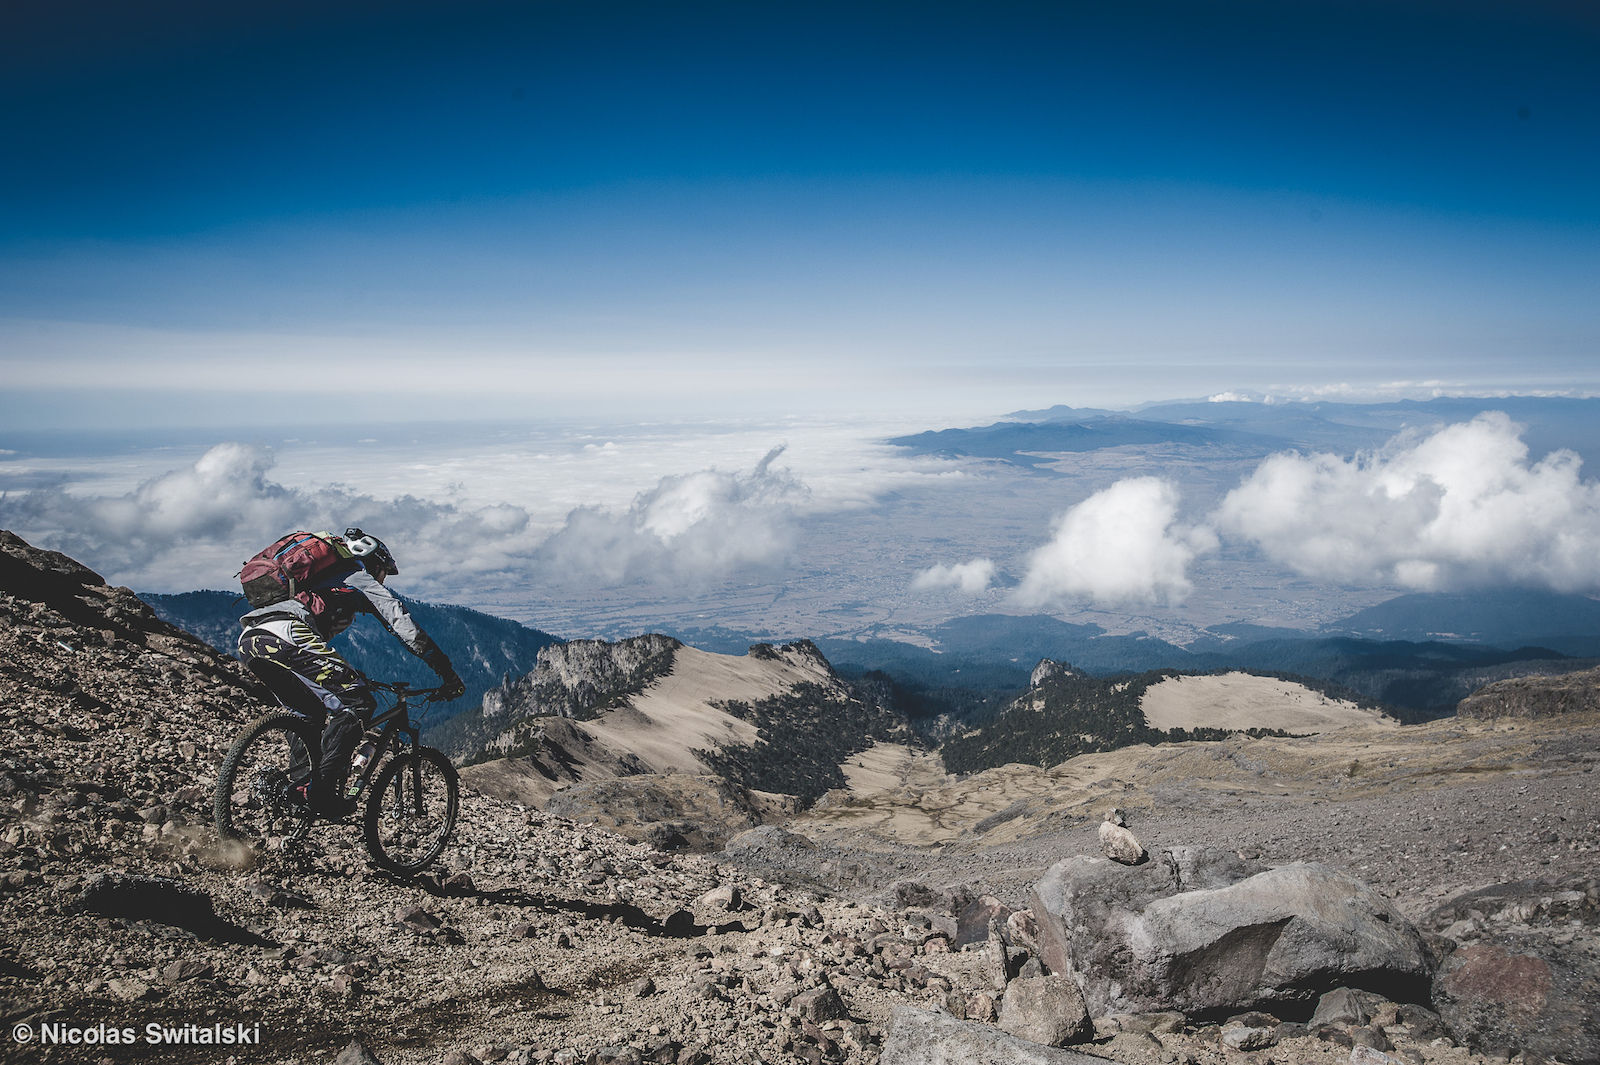 Image for the article - Iztacc huatl Riding down a volcano